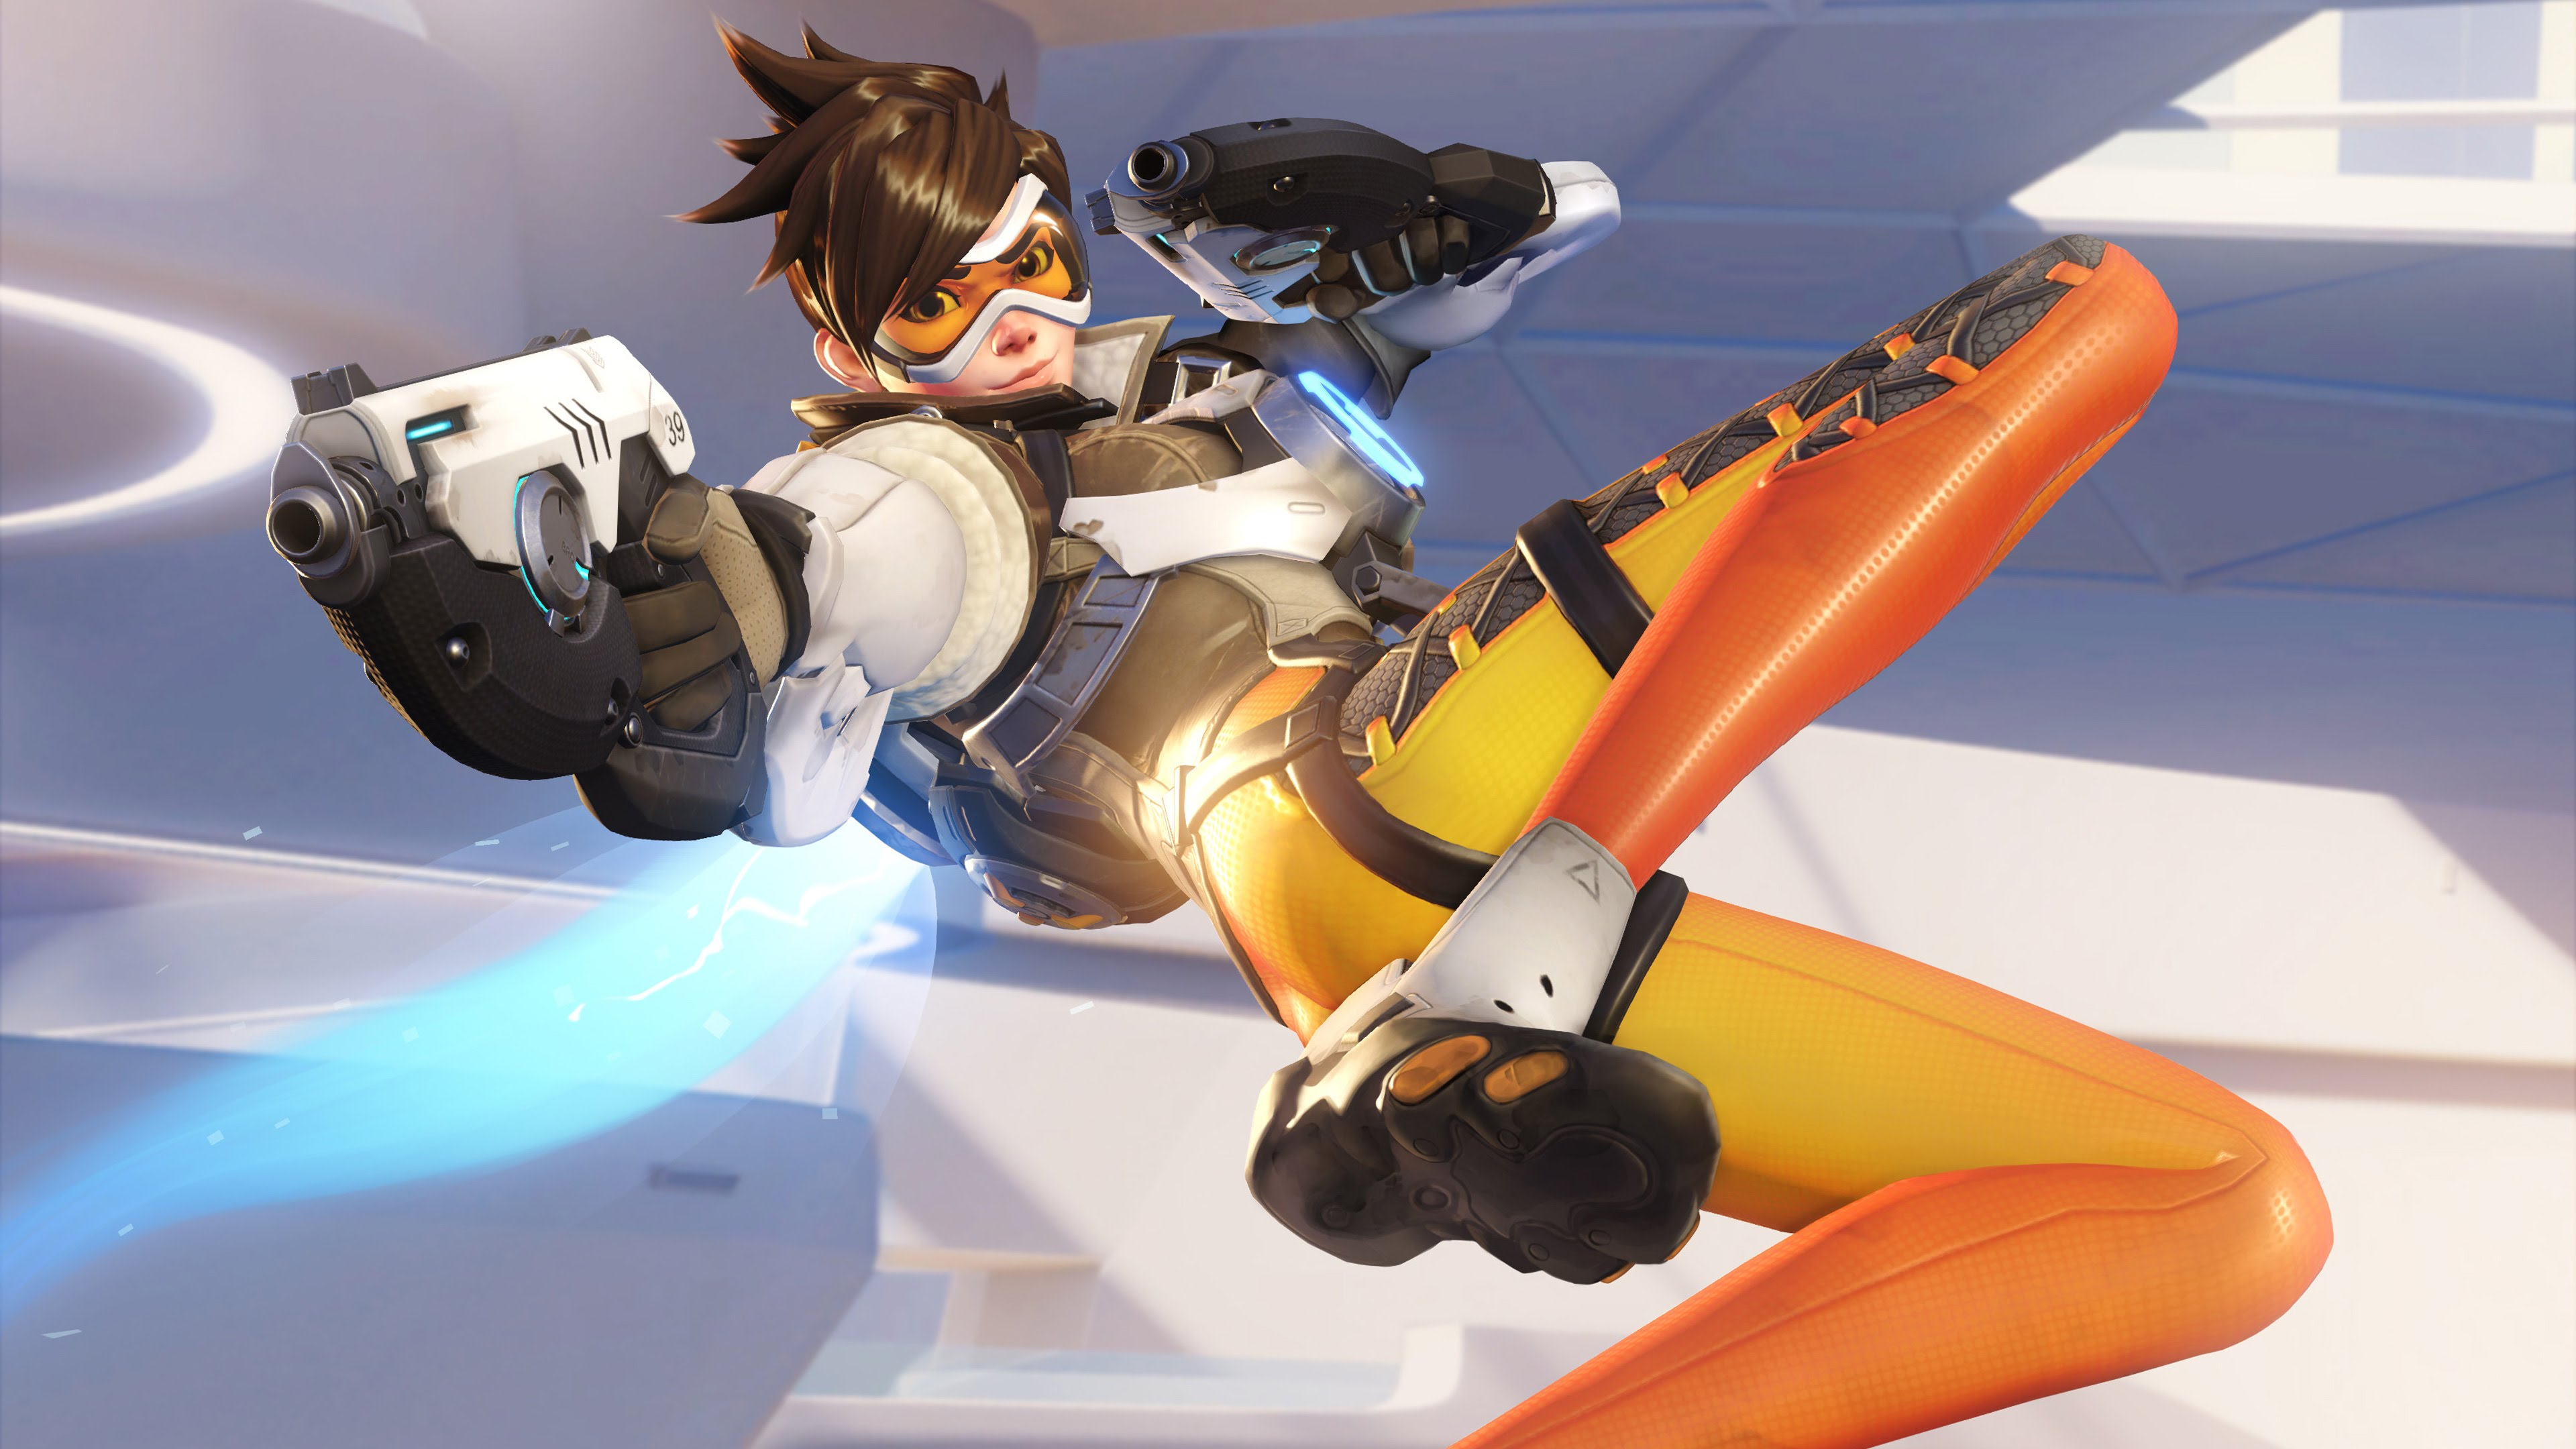 Overwatch Tracer 4K Wallpapers HD Wallpapers 3840x2160